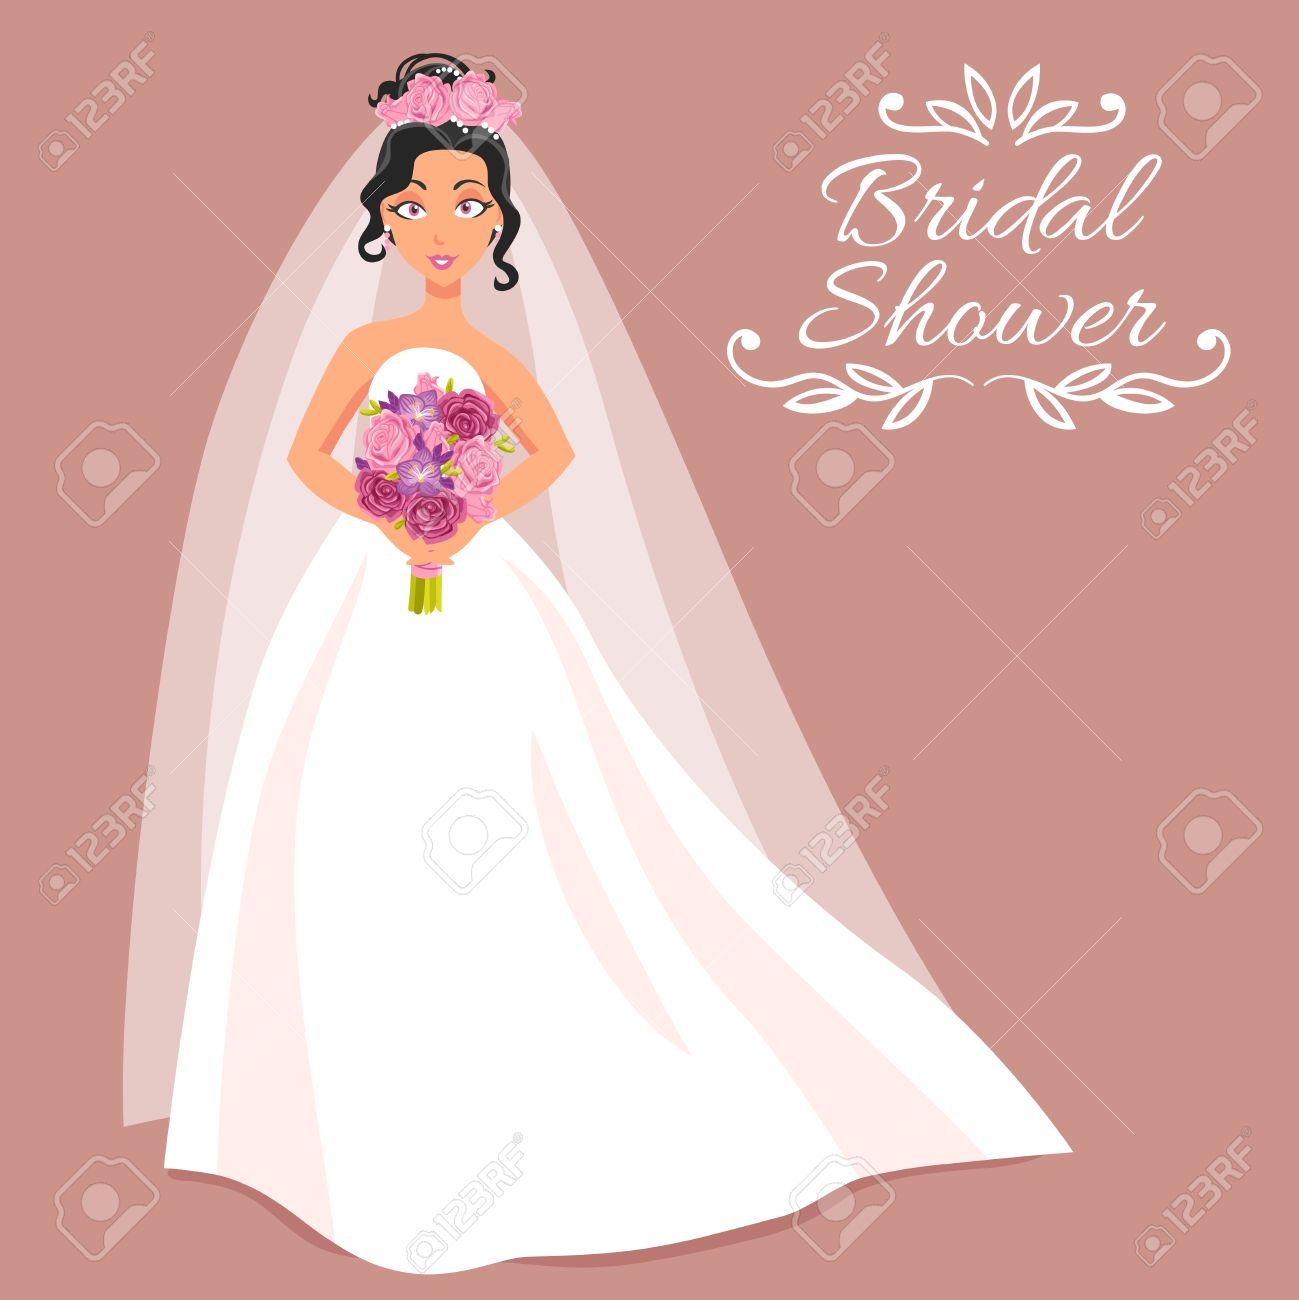 bridal shower cartoon invitation with beautiful young bride in white dress and veil on rose background